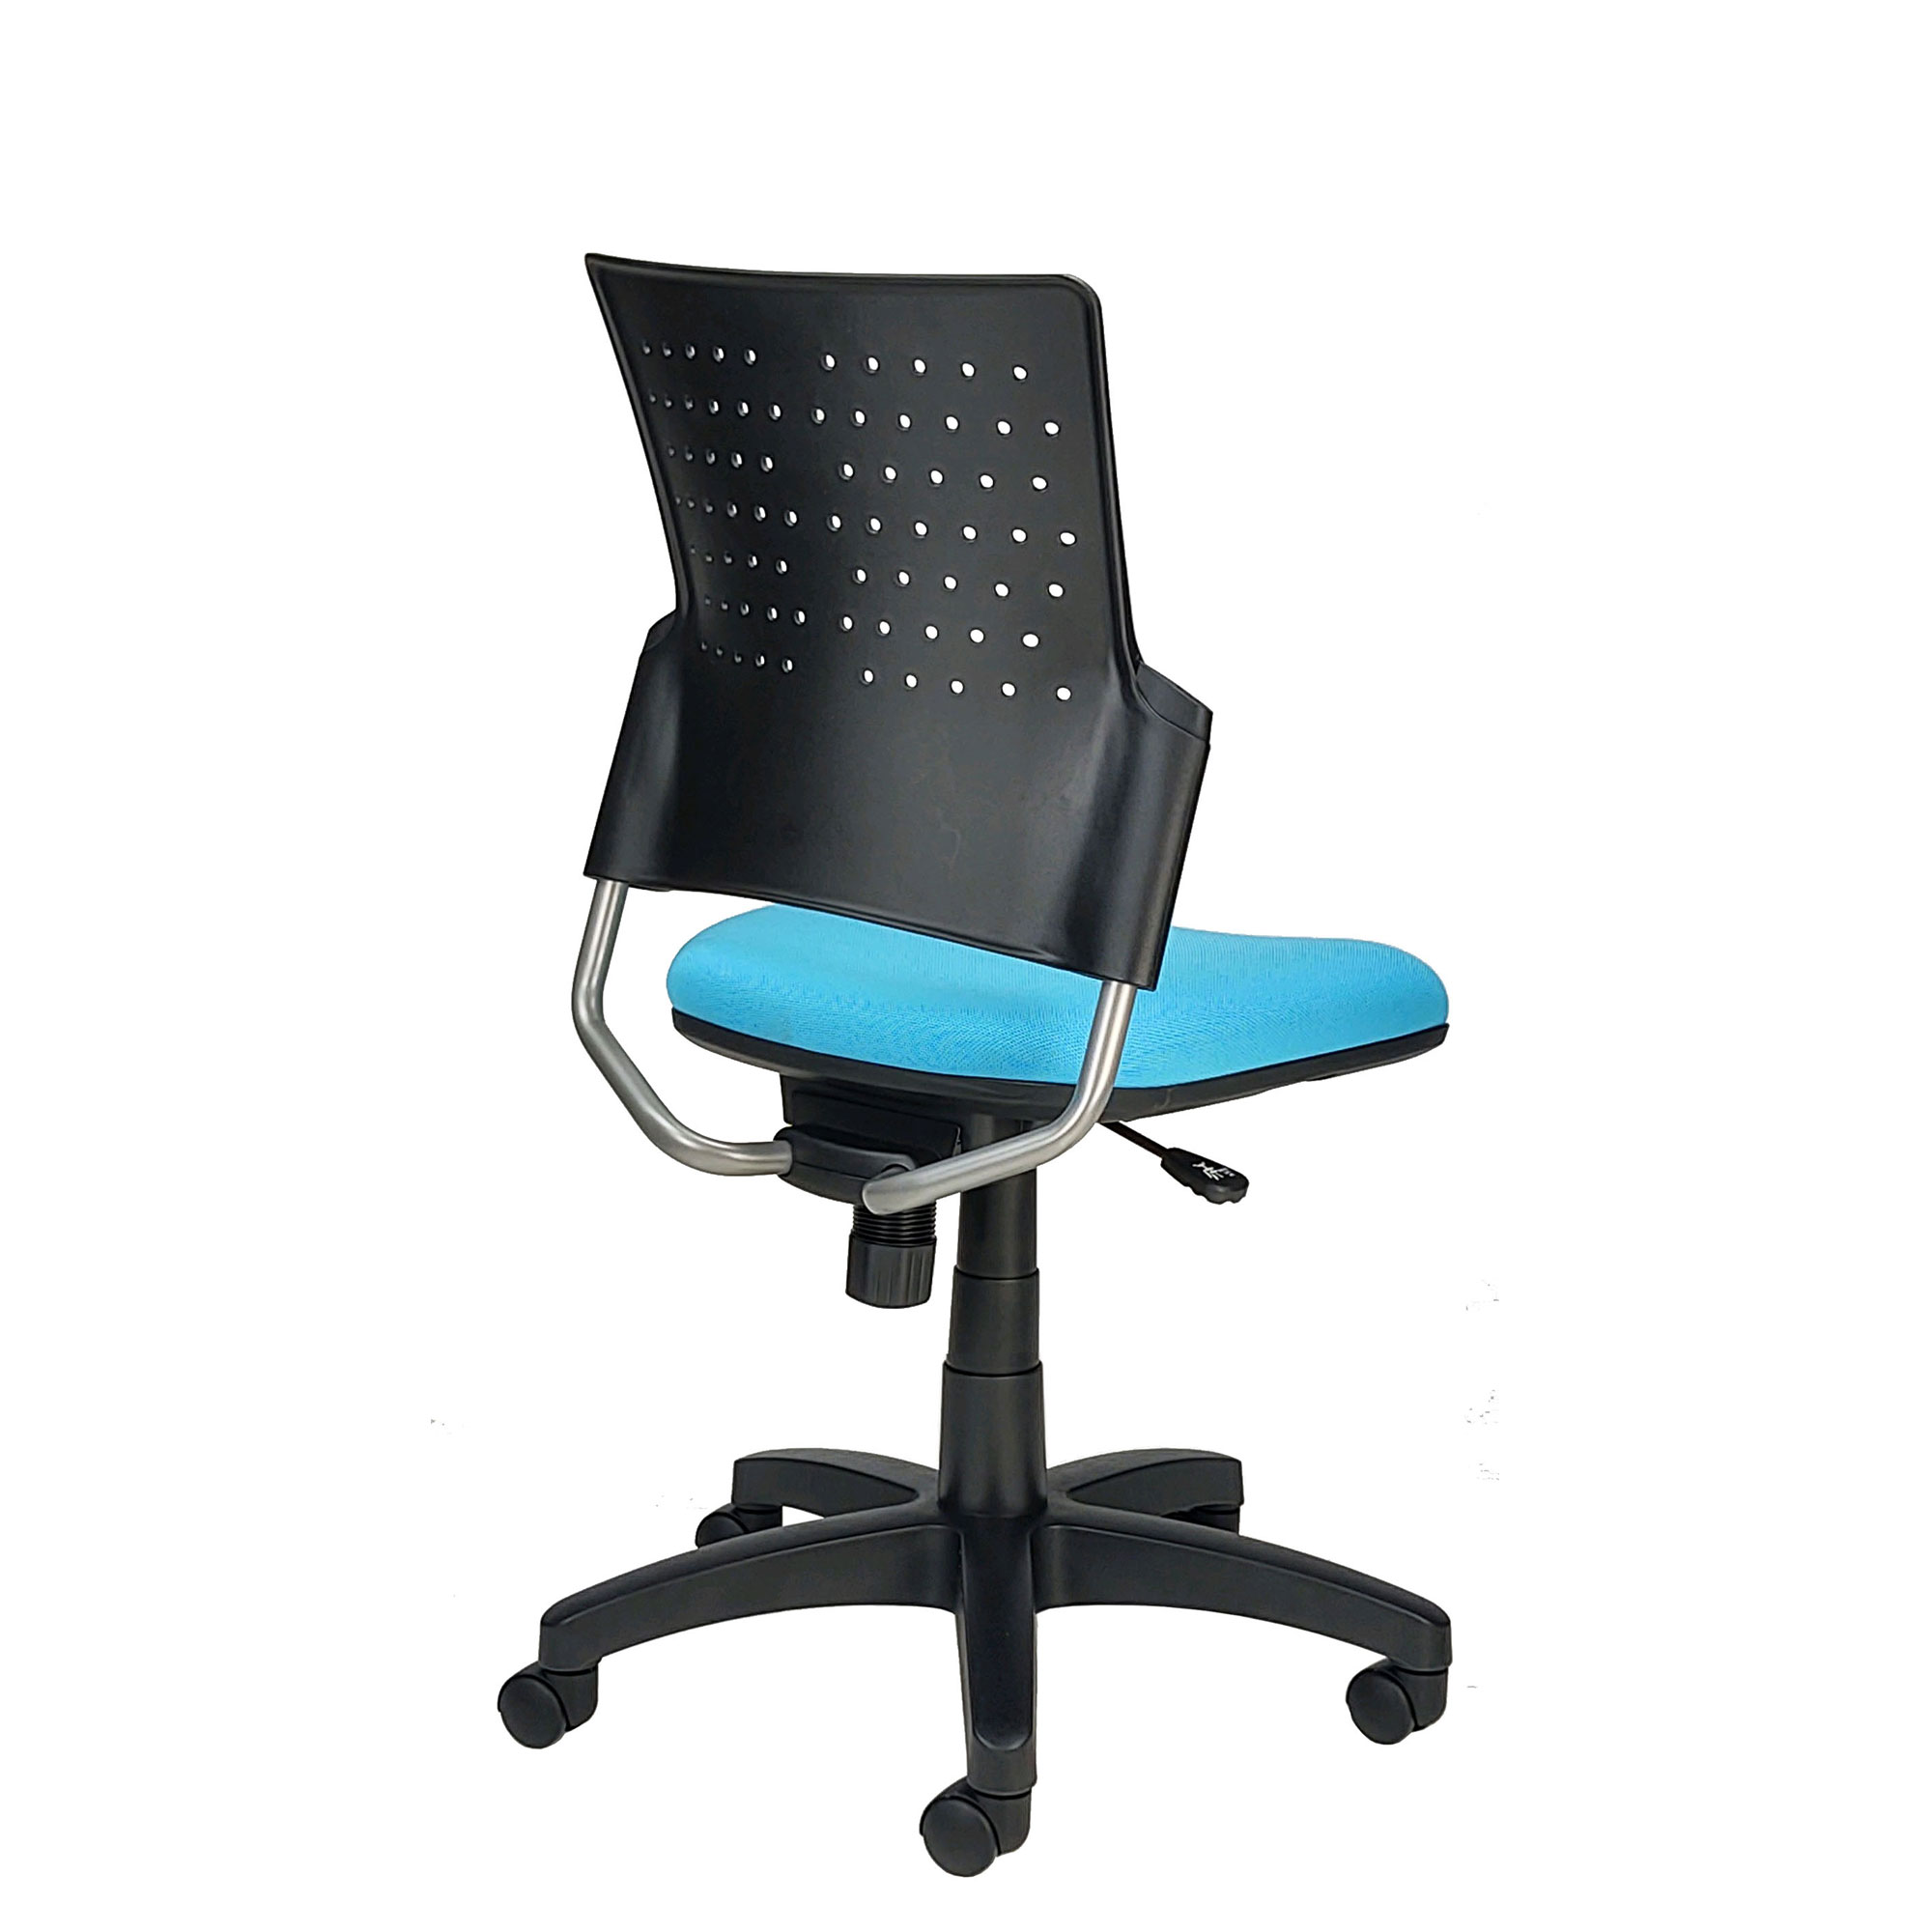 Small office chair with blue seat